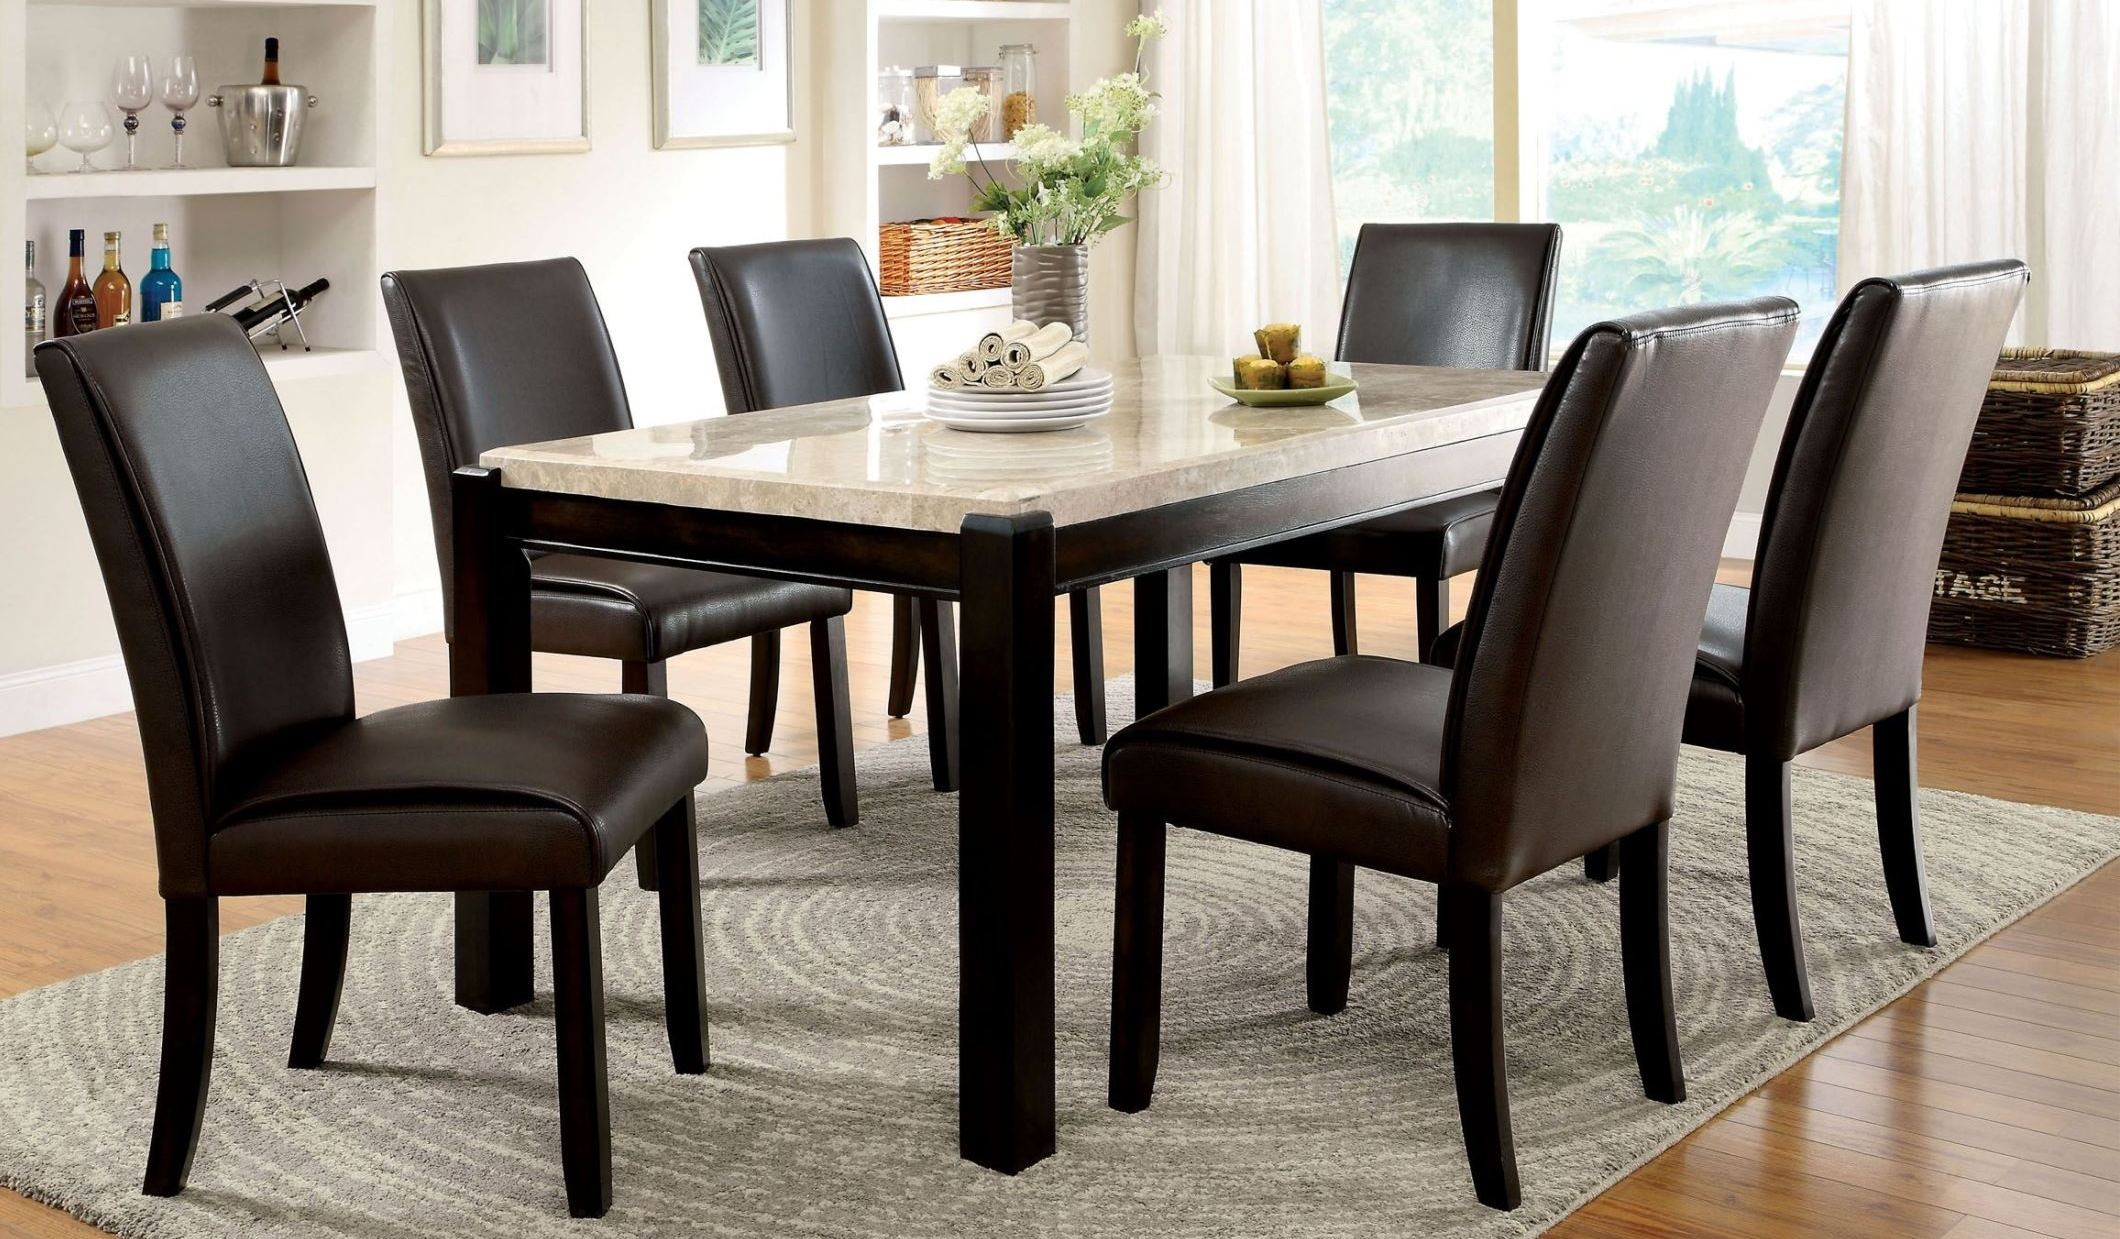 marble top table with 4 chairs chair covers cheap to buy gladstone i china dining room set from